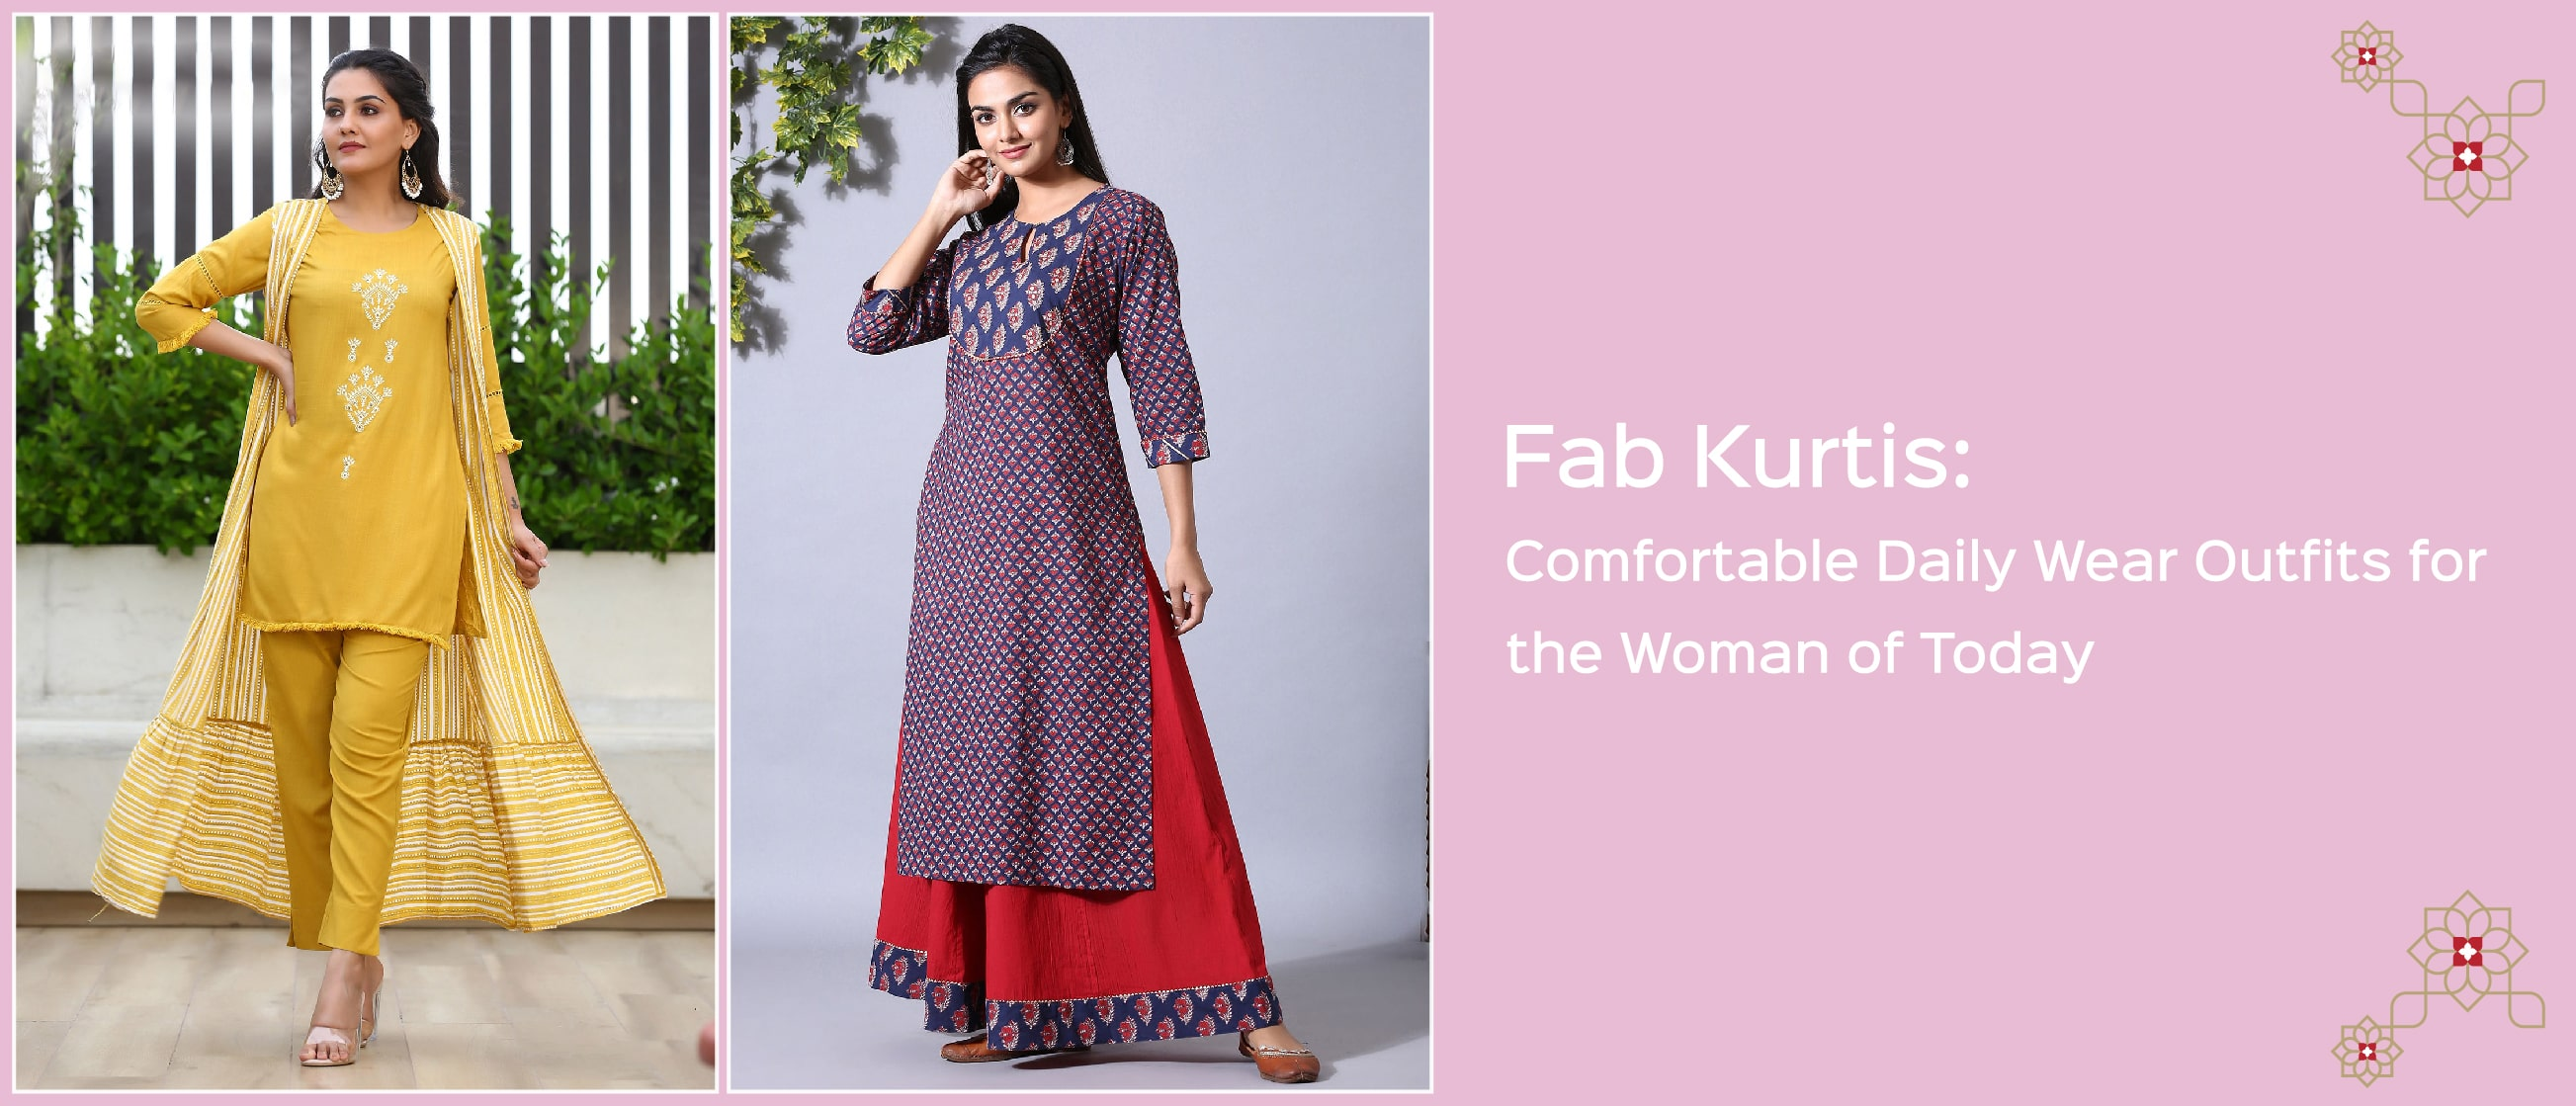 Fab Kurtis: Comfortable Daily Wear Outfits for the Woman of Today